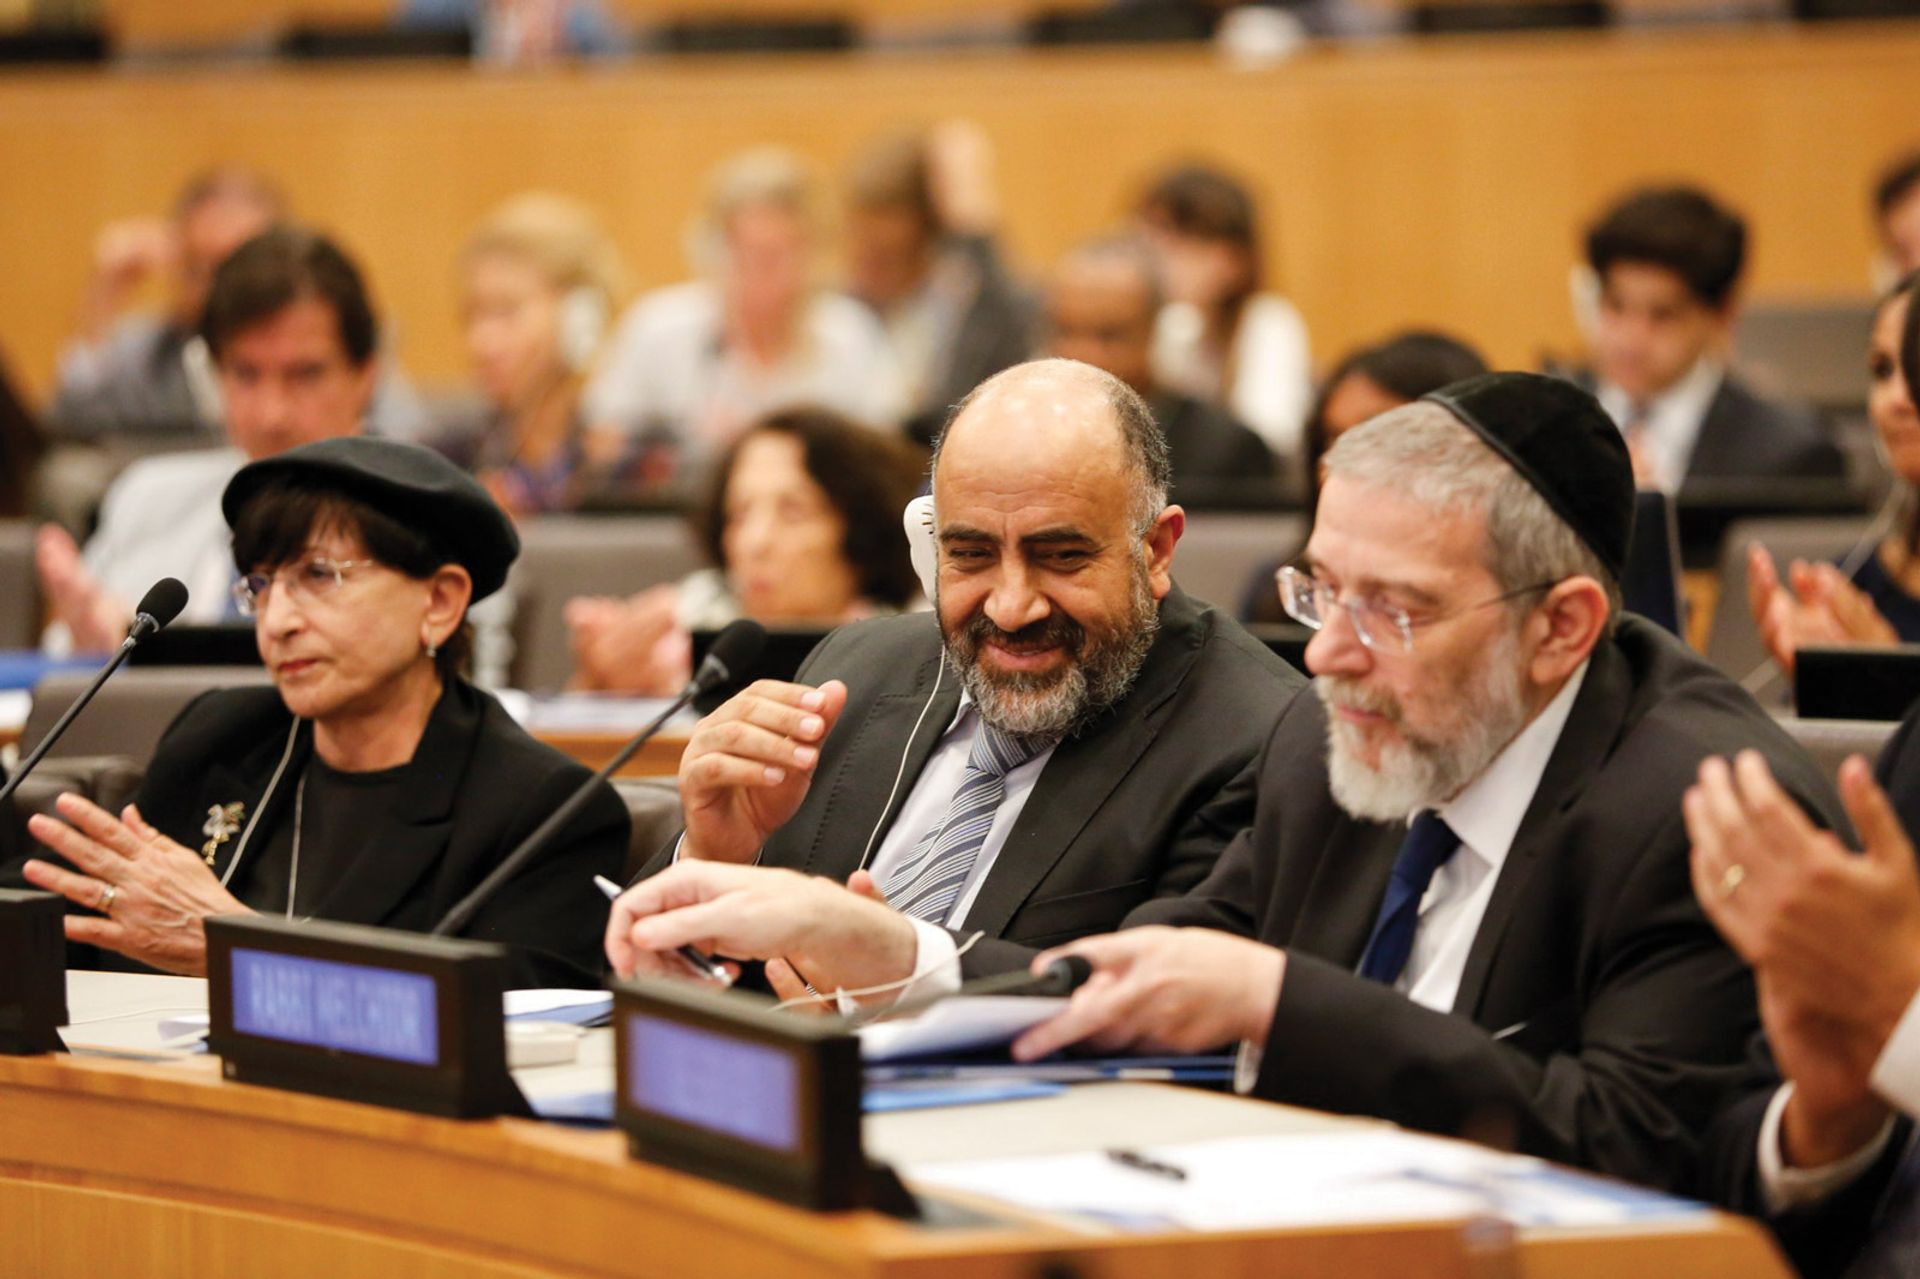 Sheikh Raed Bader and Rabbi Michael Melchior: key figures in the religious peace network ALF/UNAOC